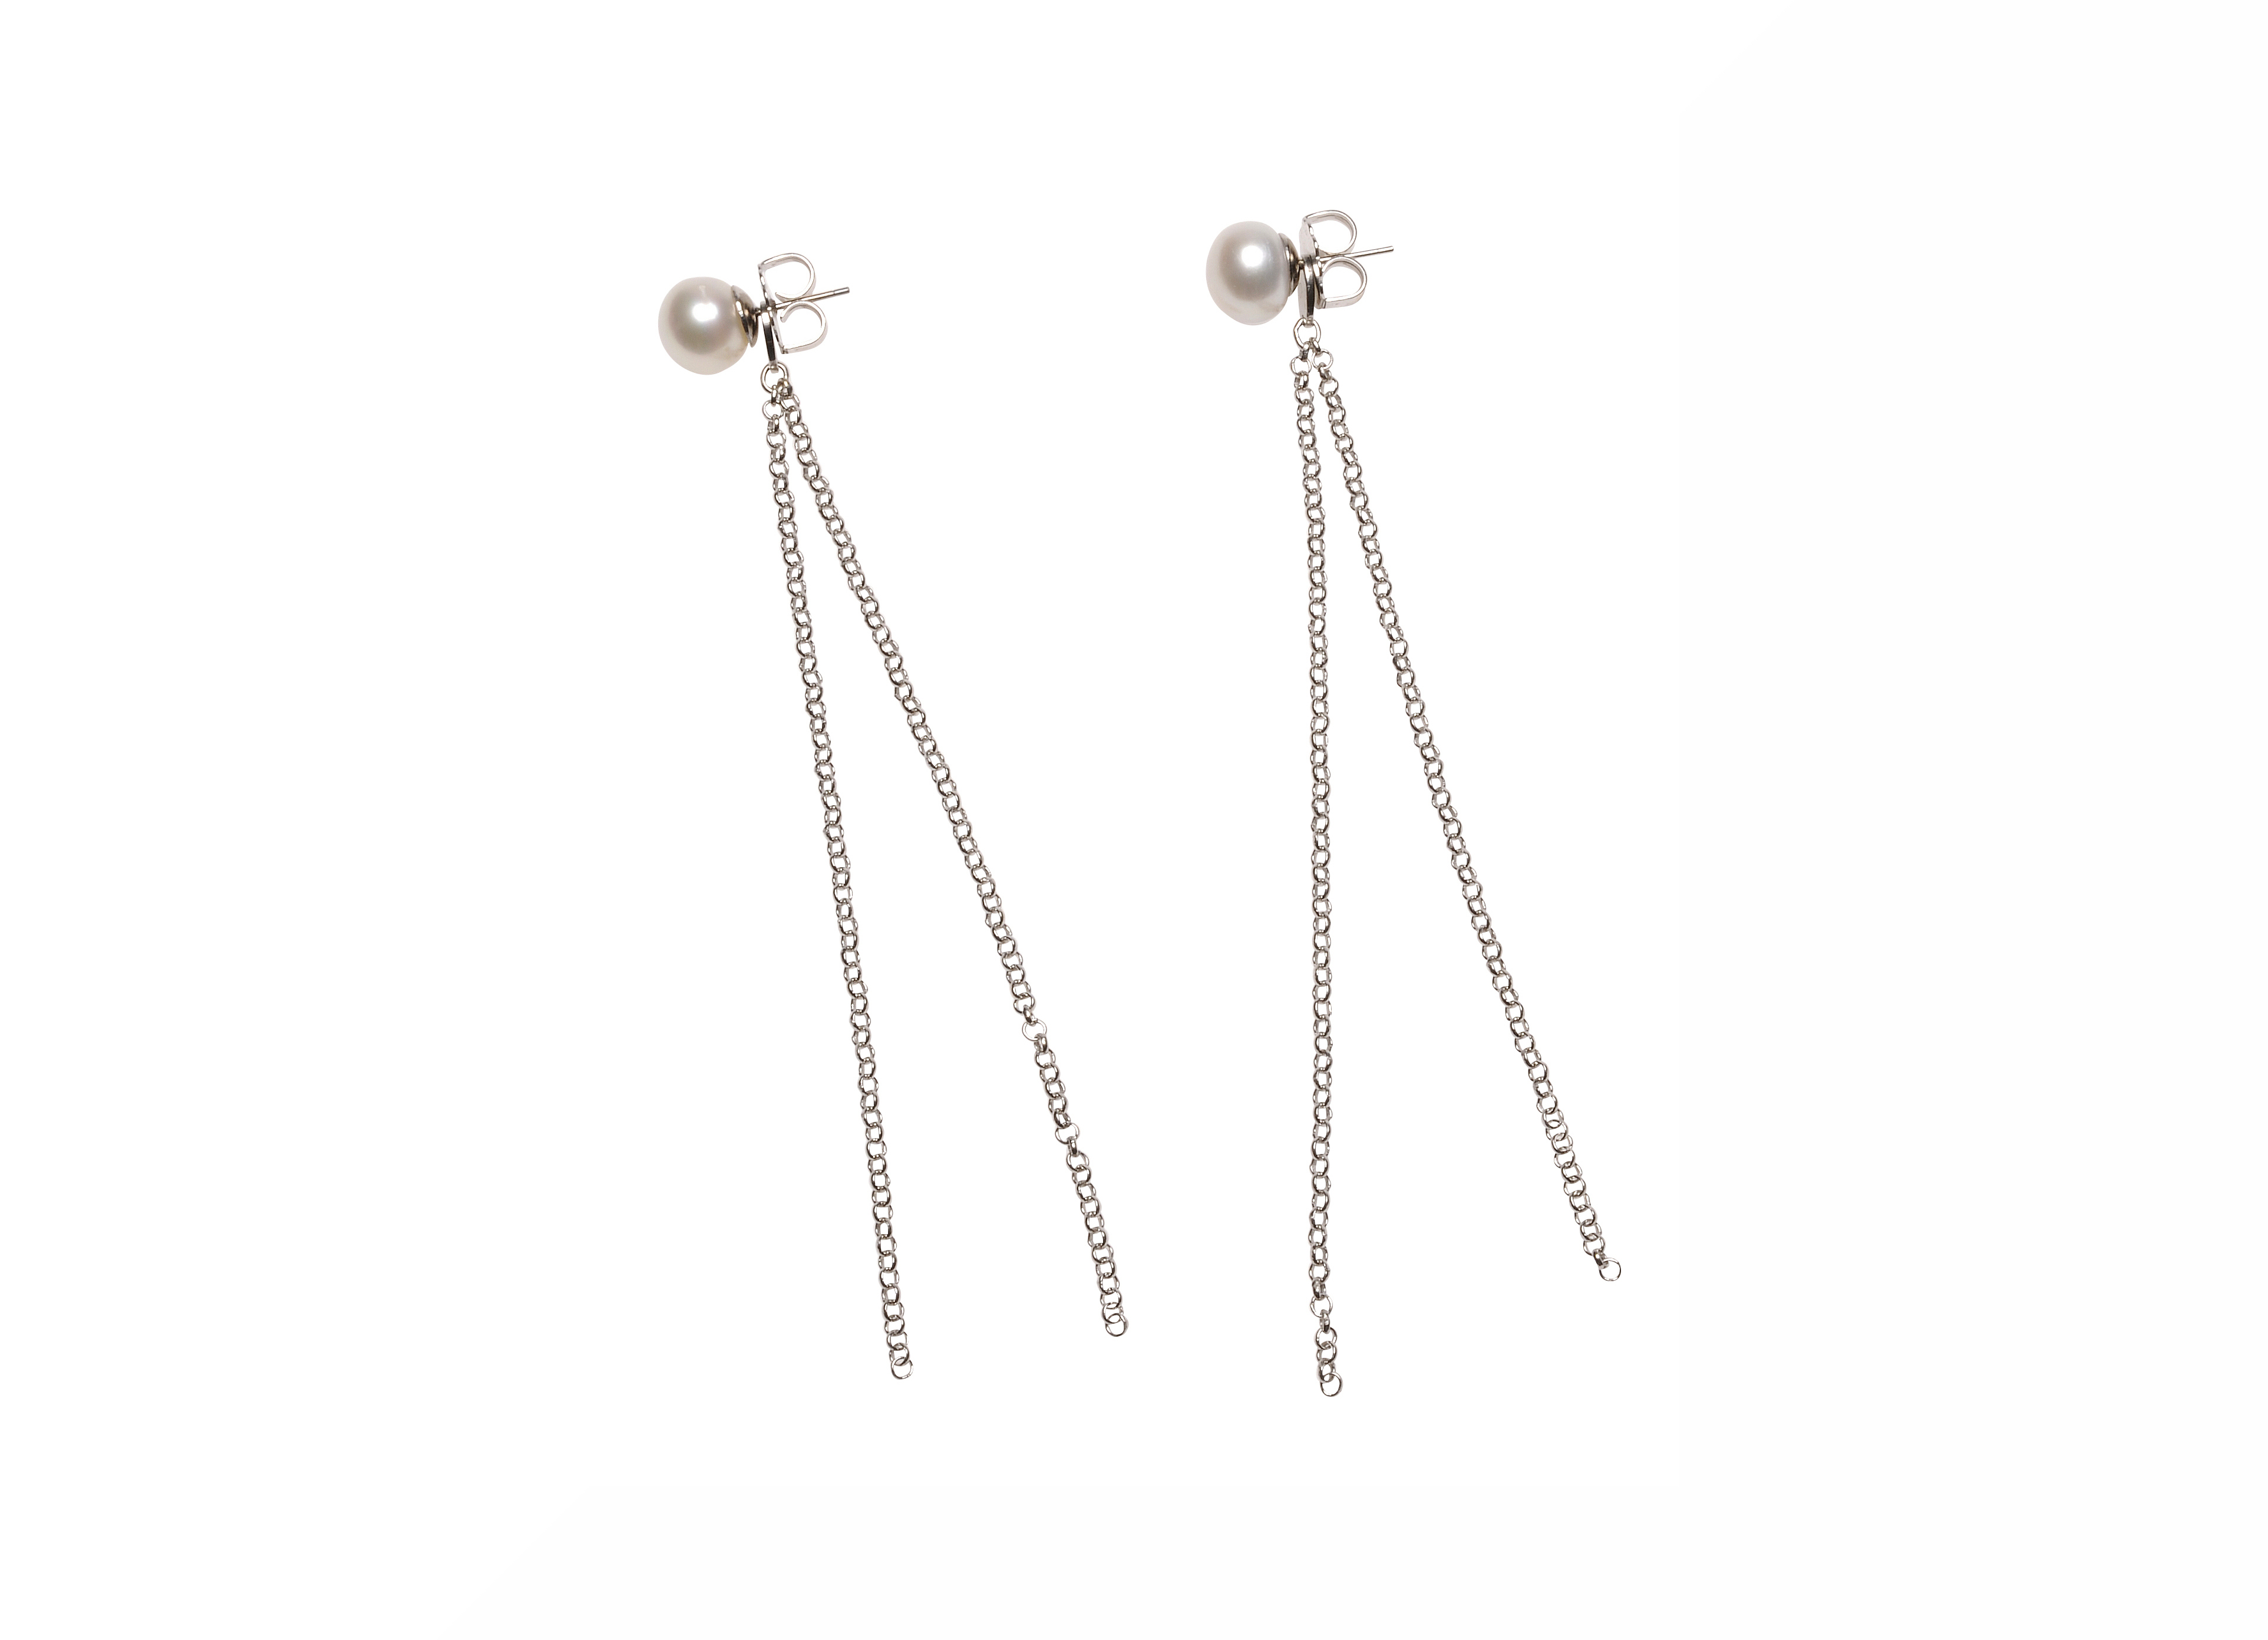 AMALIA PEARLS WITH SILVER CORNELIA HENZE